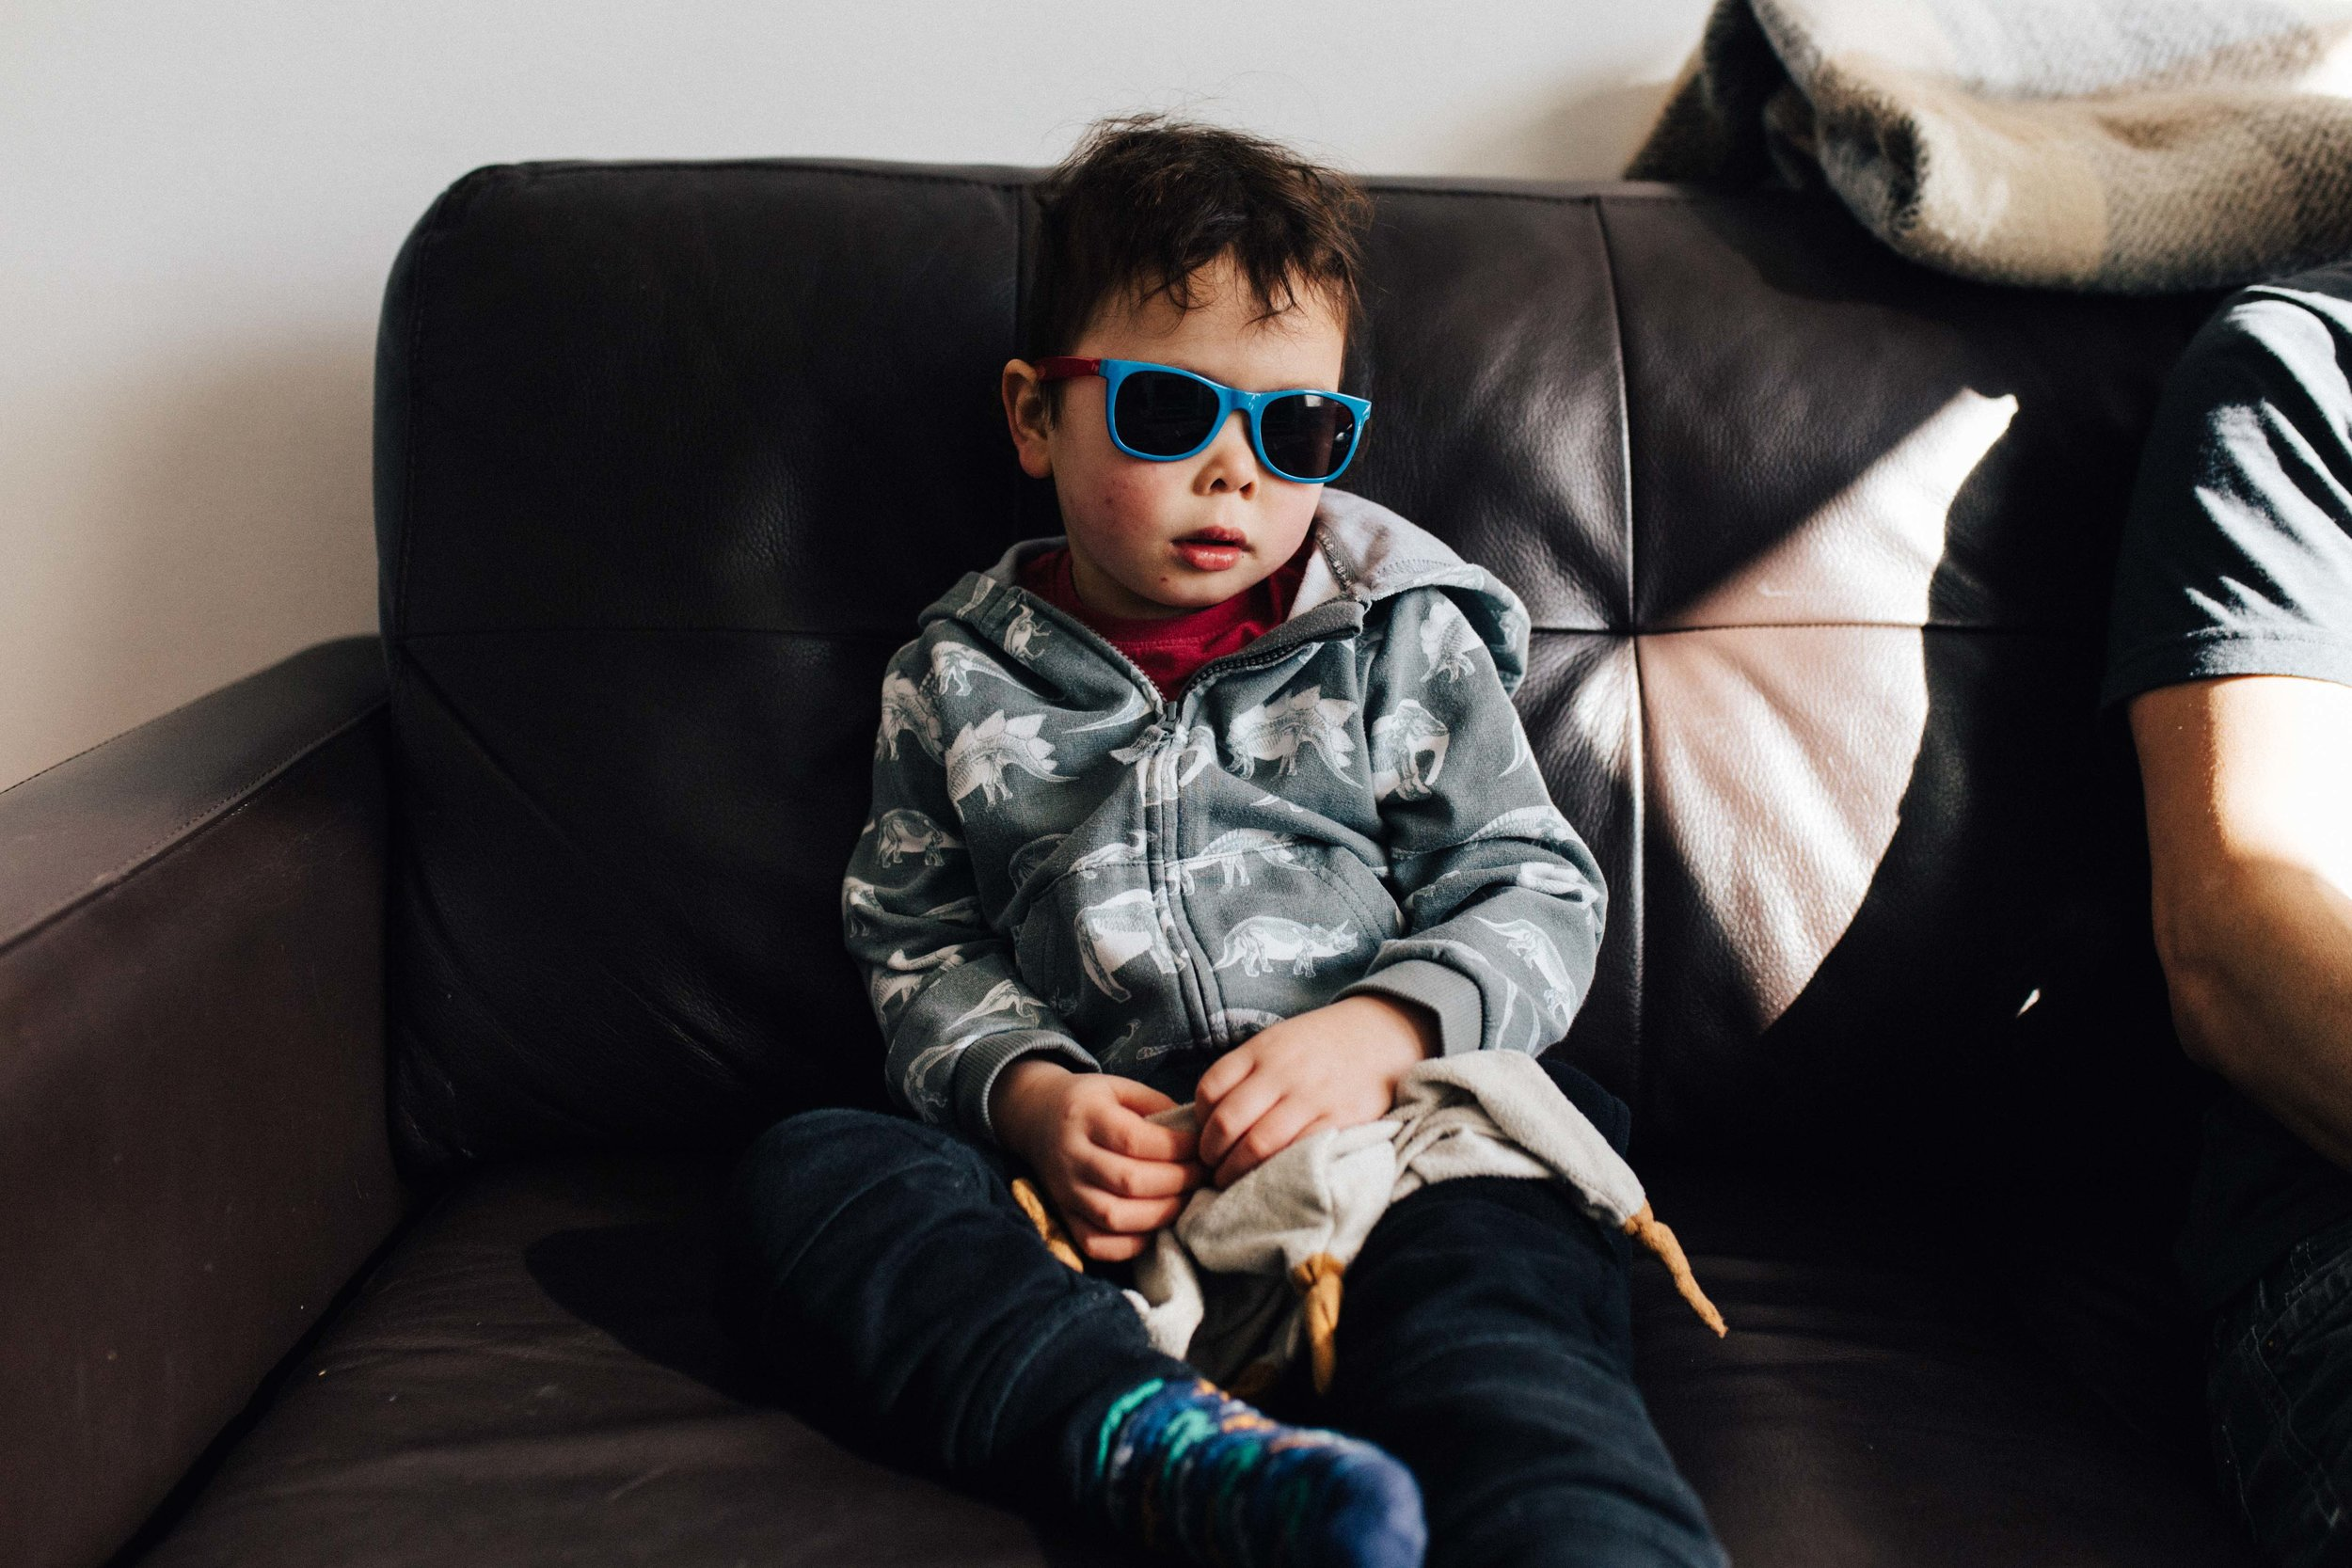 Boy on sofa with sunglasses